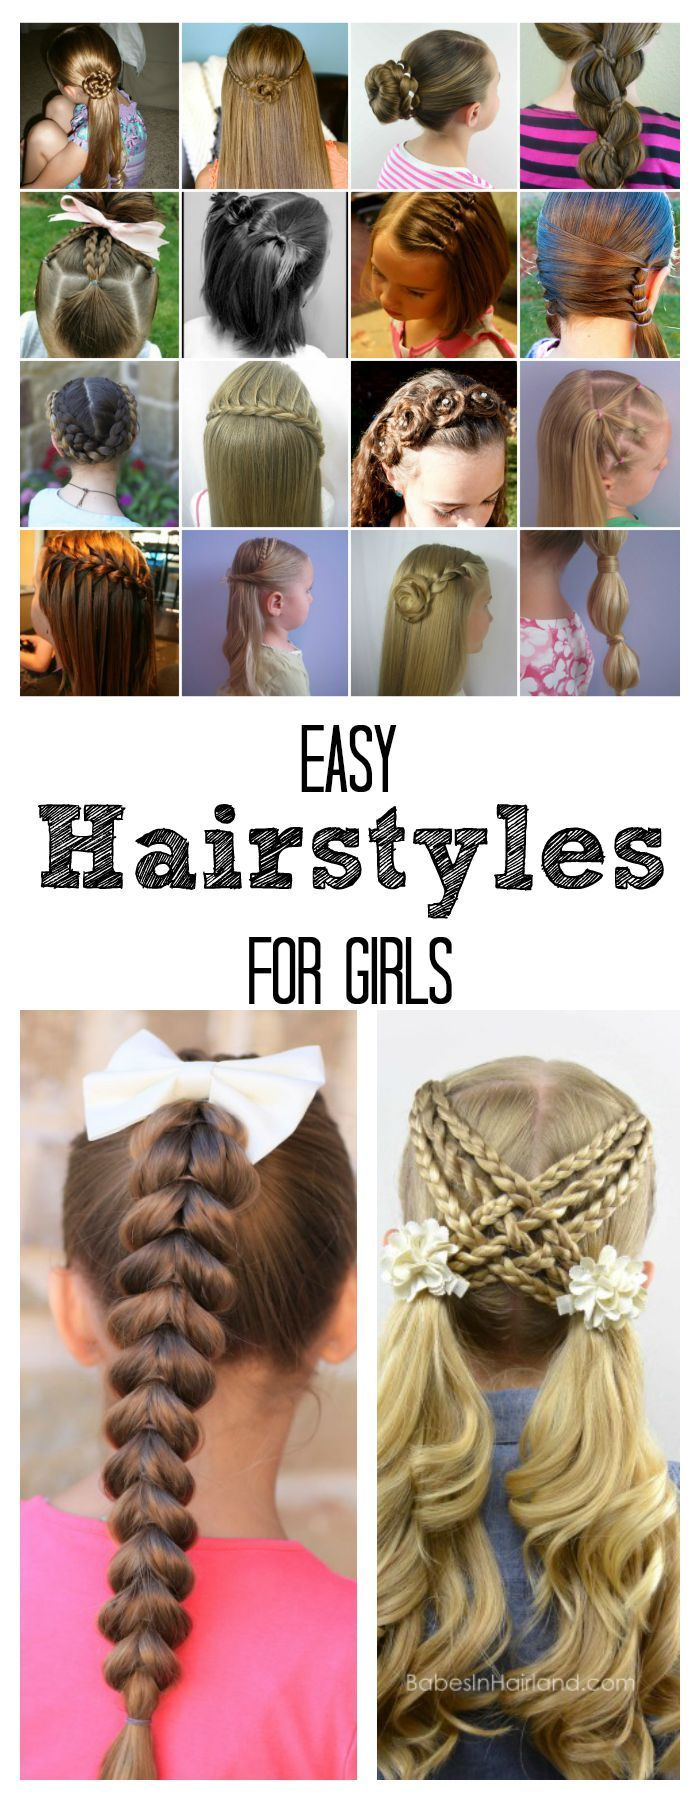 Nice easy hairstyles for girls hairstyles for kids en